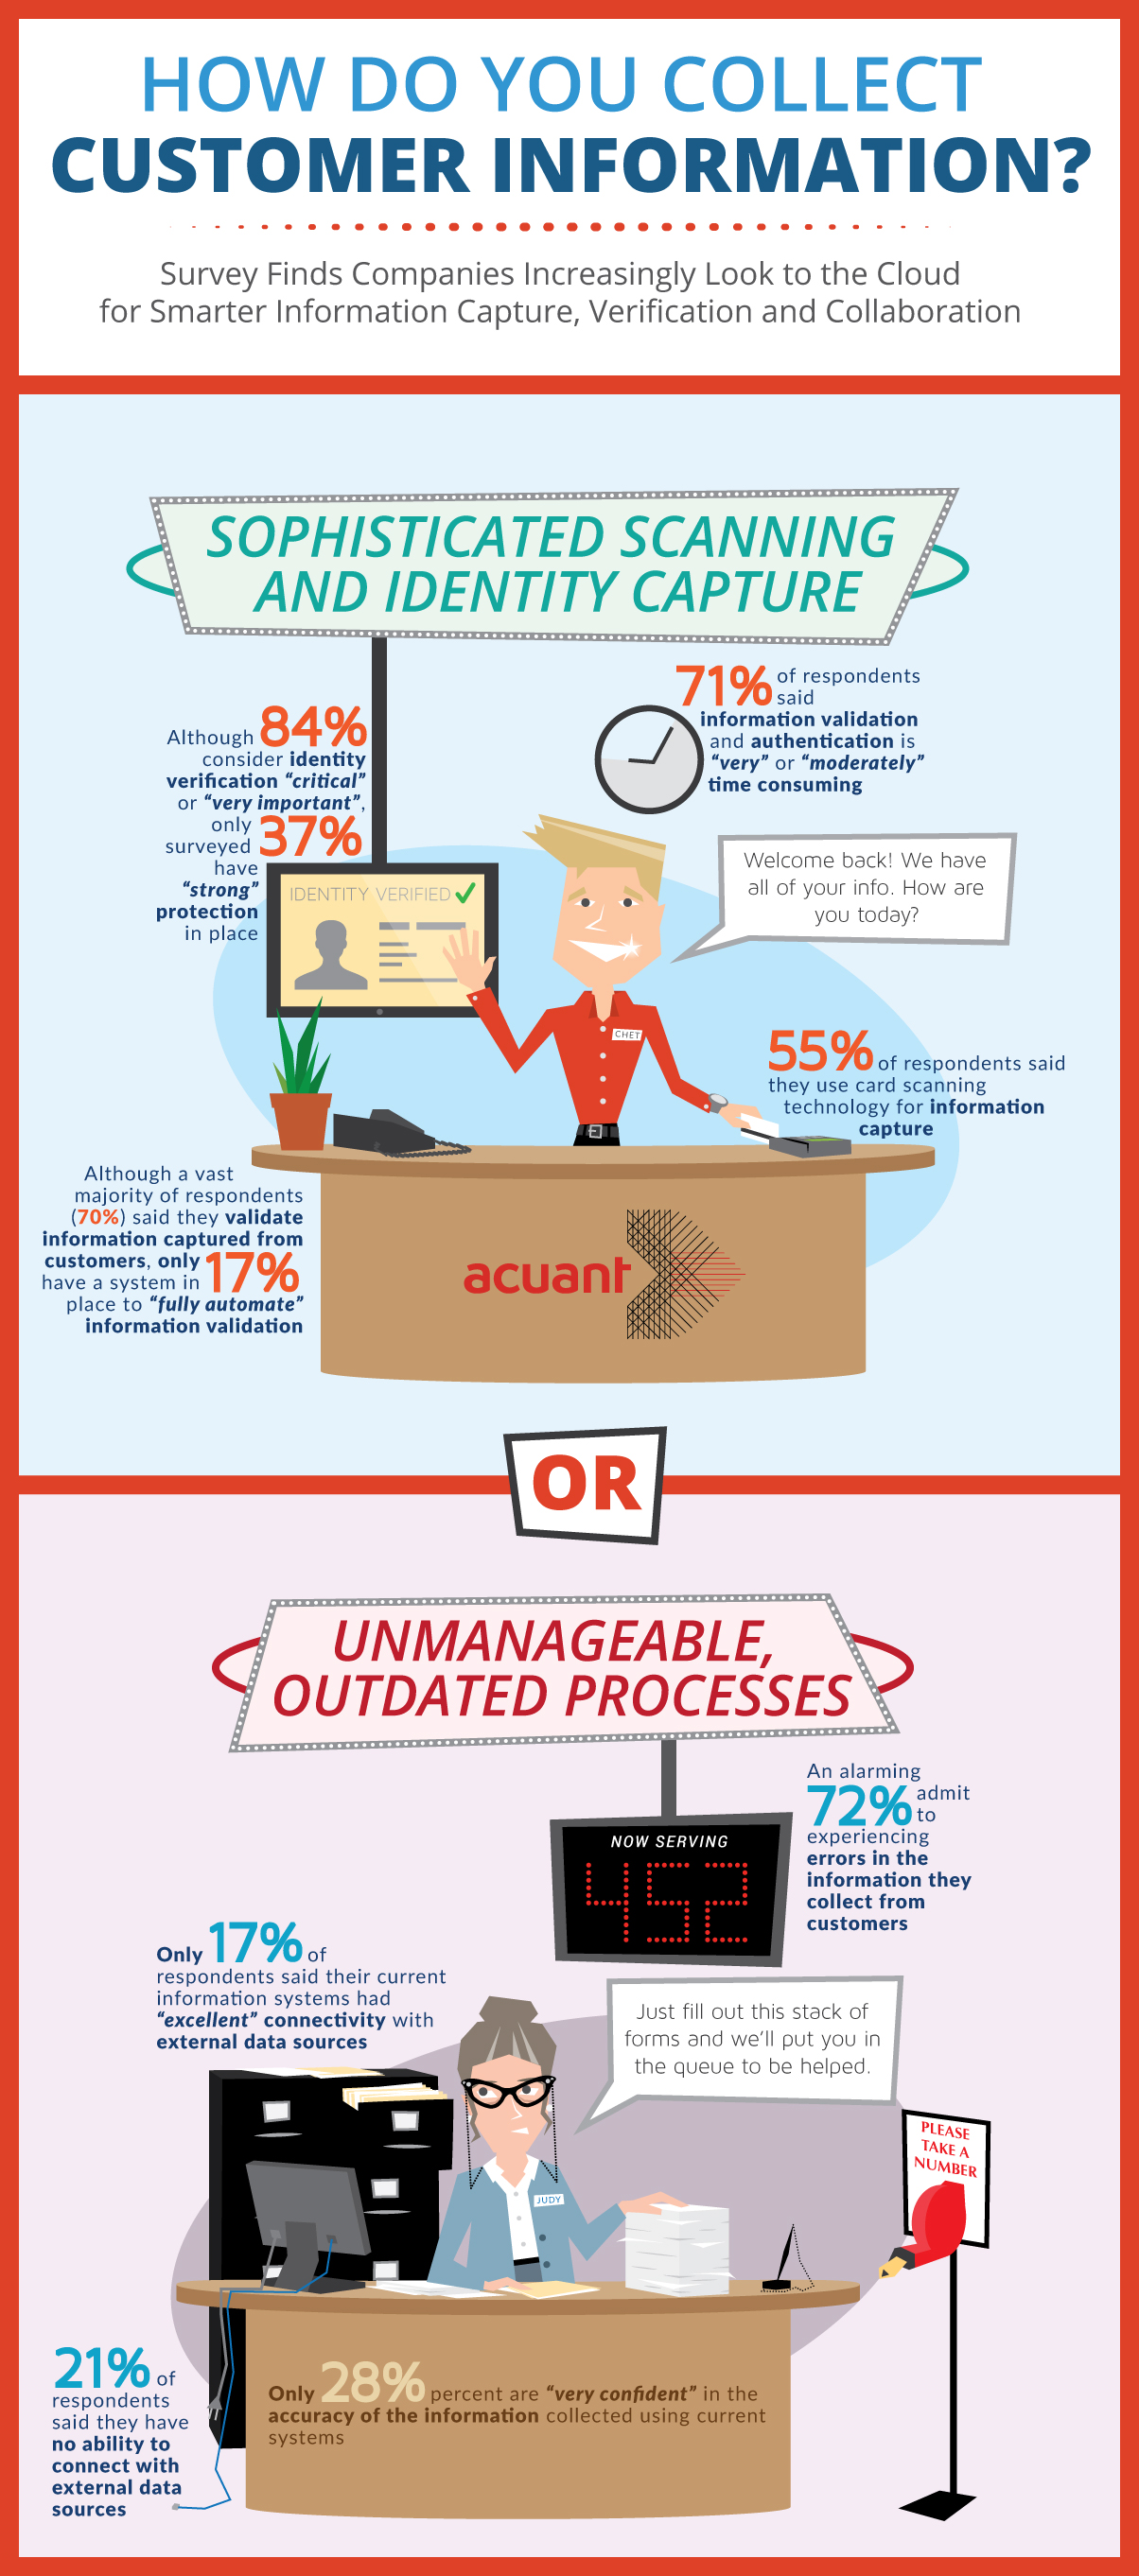 Acuant Survey: Companies Look to the Cloud for Better Information Capture, Verification and Collaboration